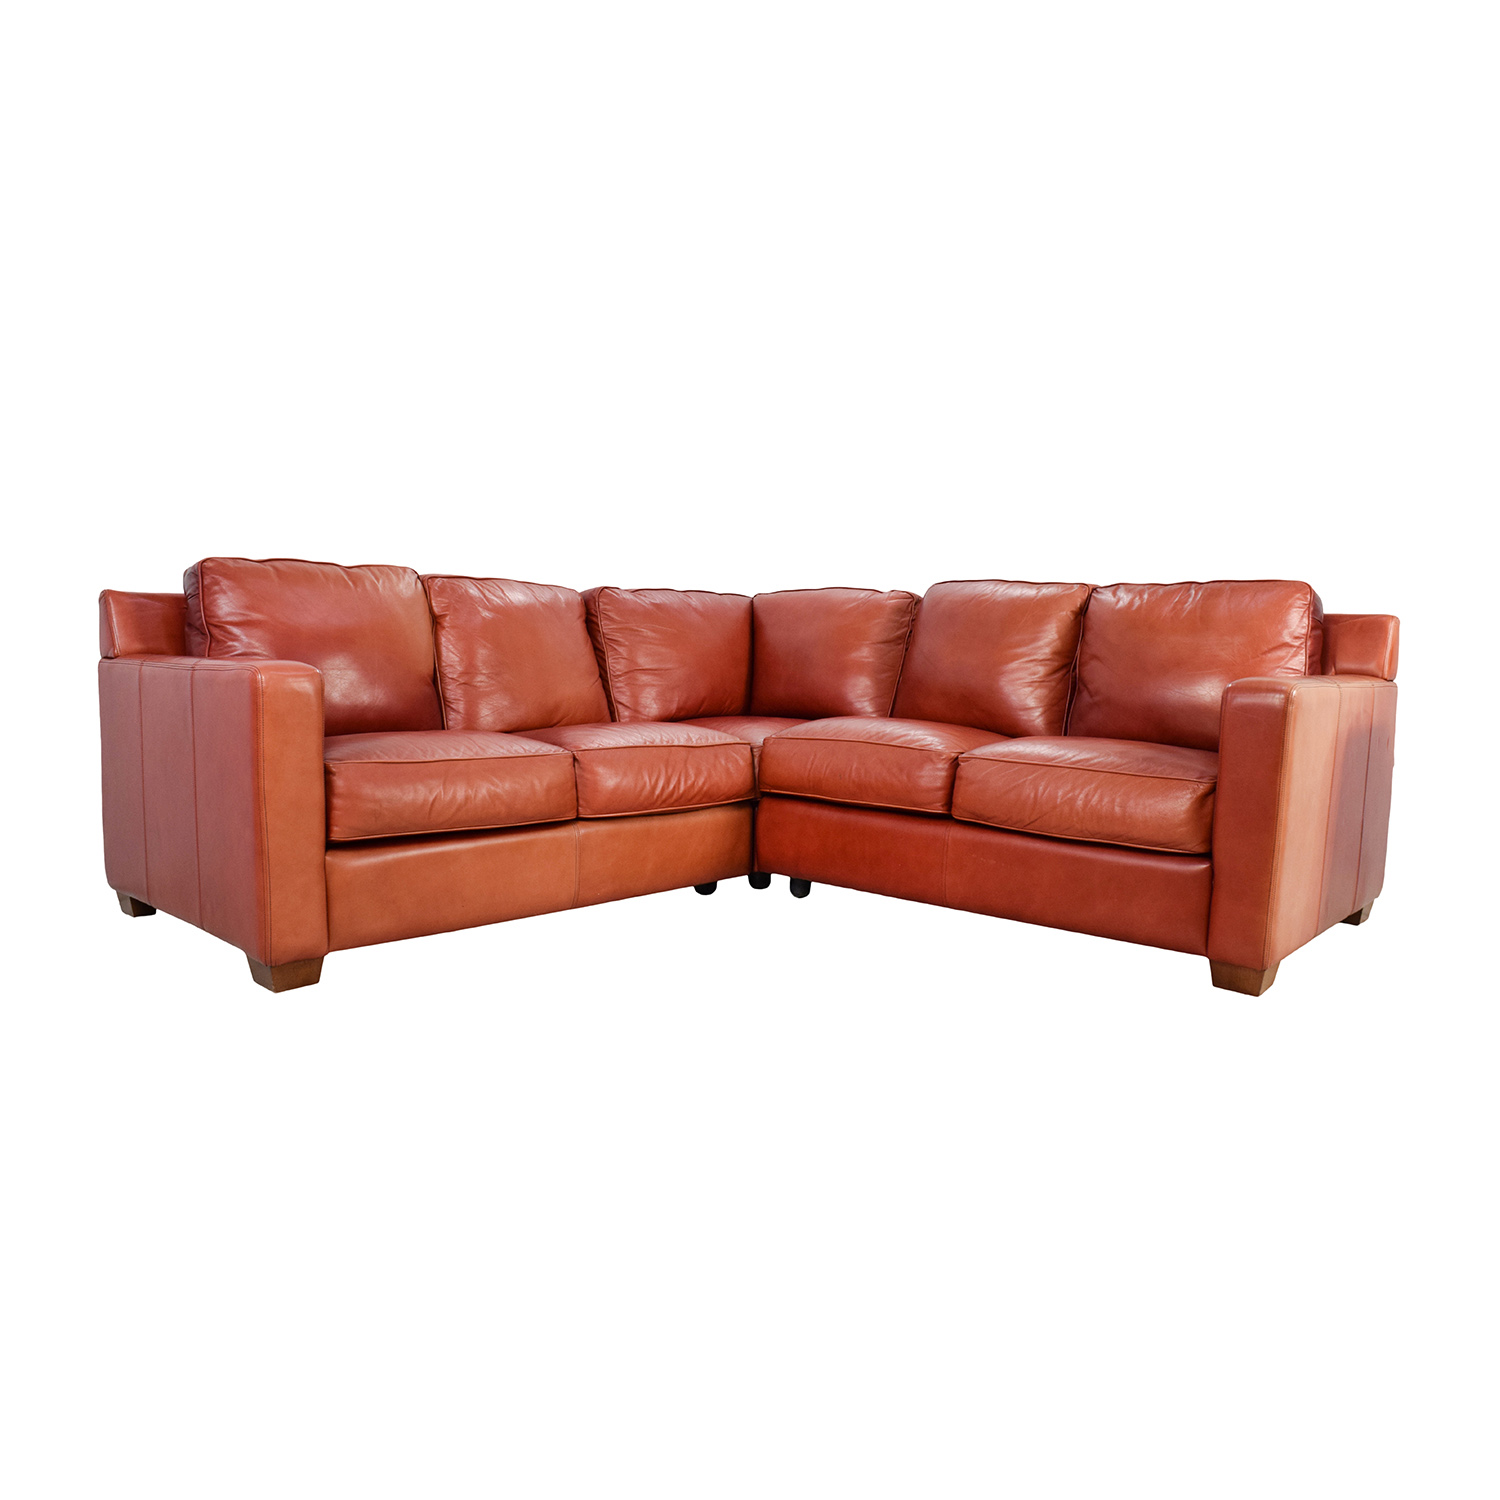 68% OFF - Thomasville Thomasville Red Leather Sectional / Sofas